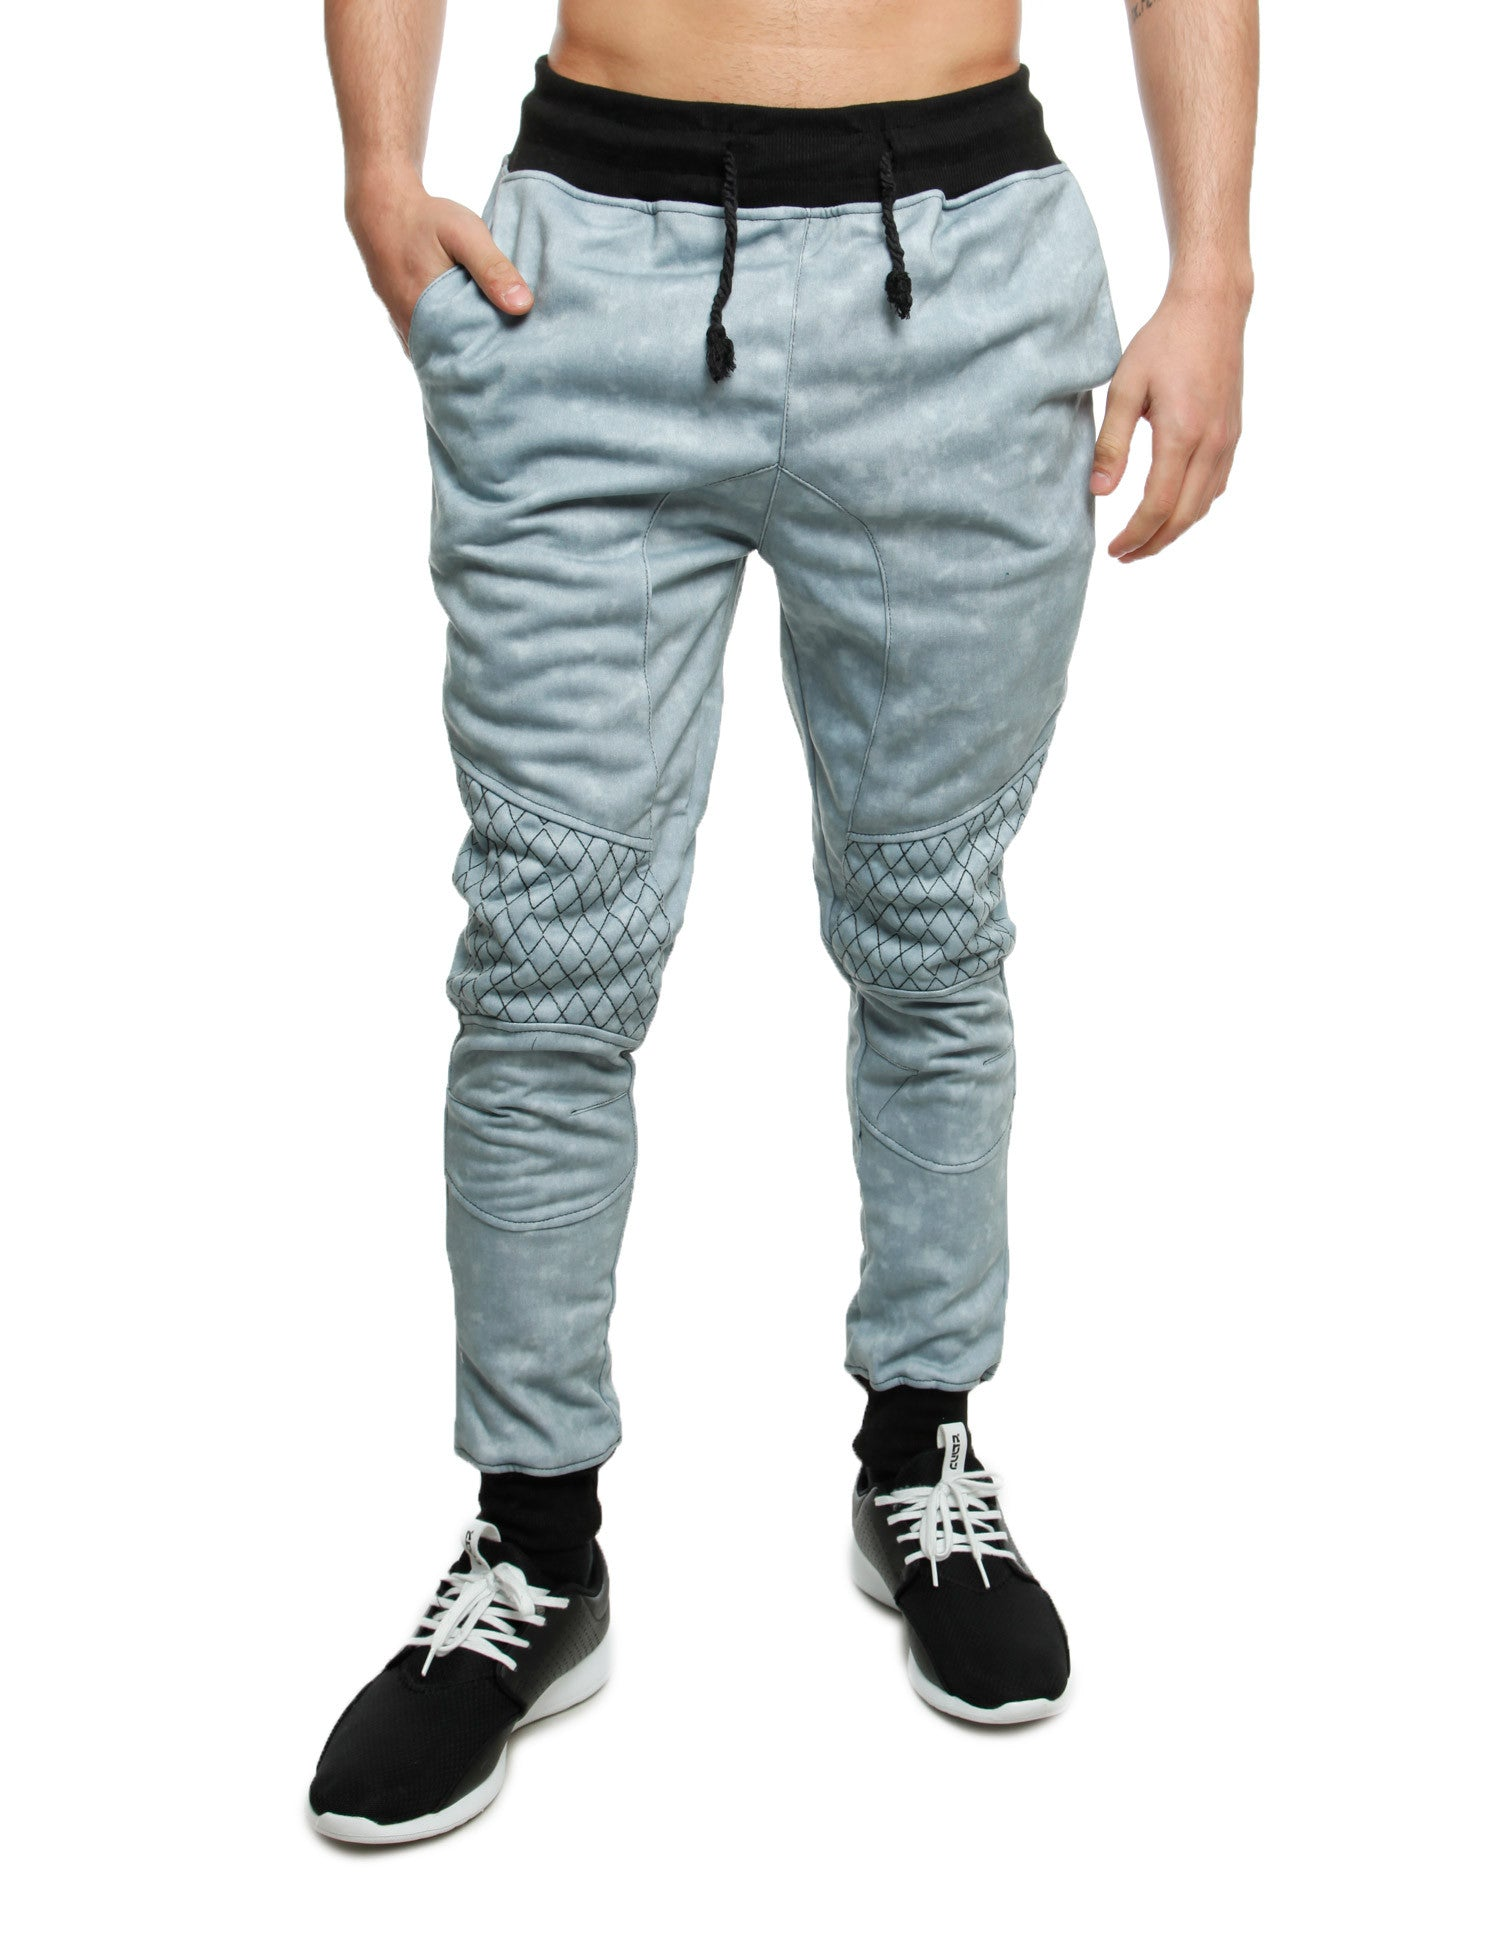 Imperious Denim Effect Sweatpant FP562 Grey